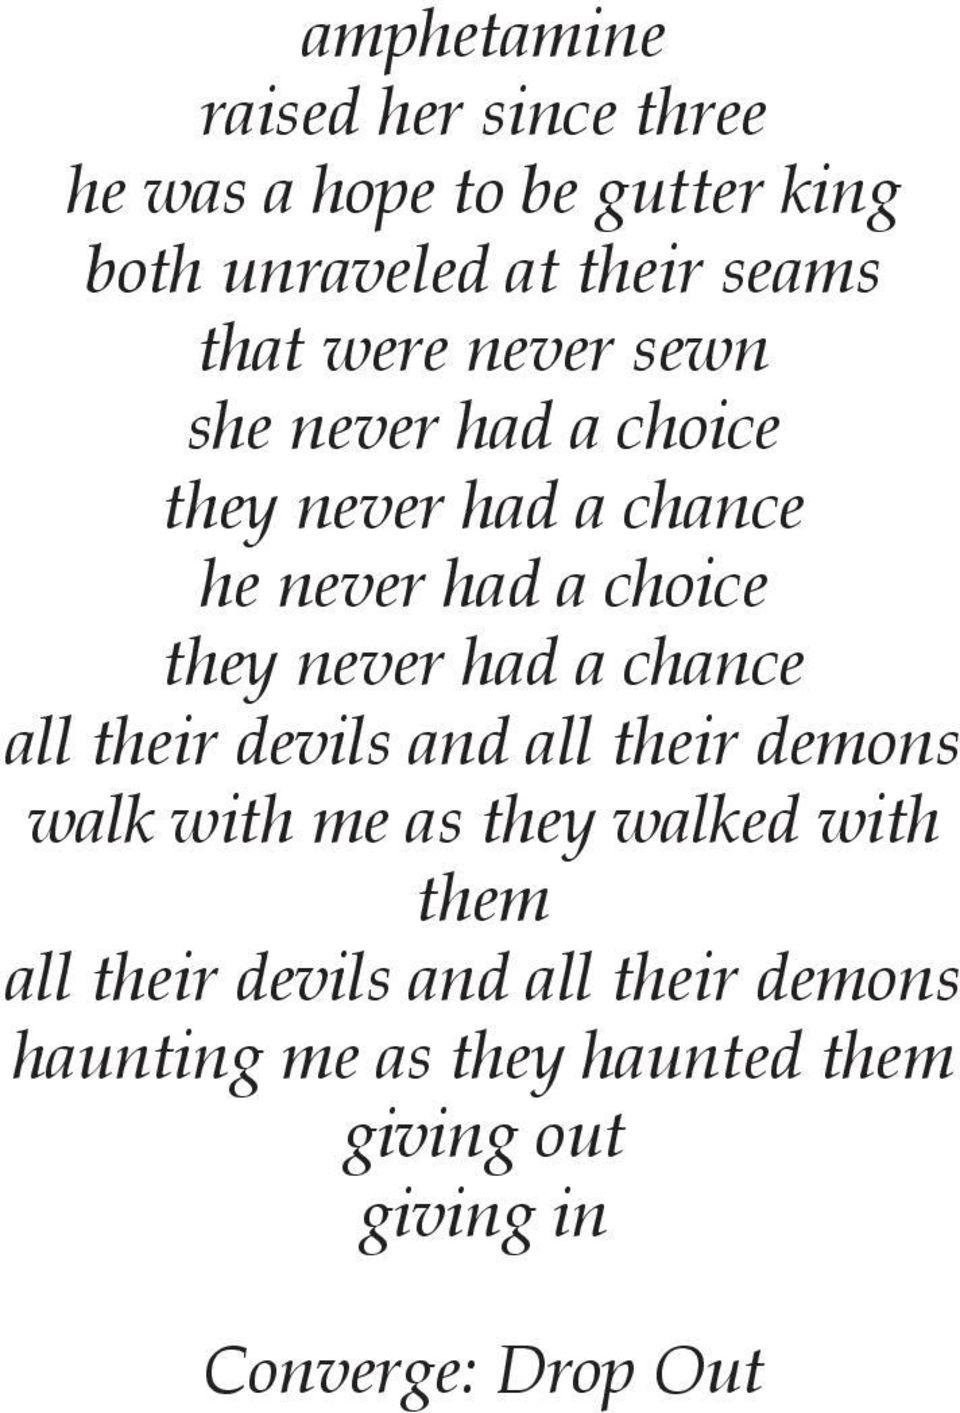 never had a chance all their devils and all their demons walk with me as they walked with them all